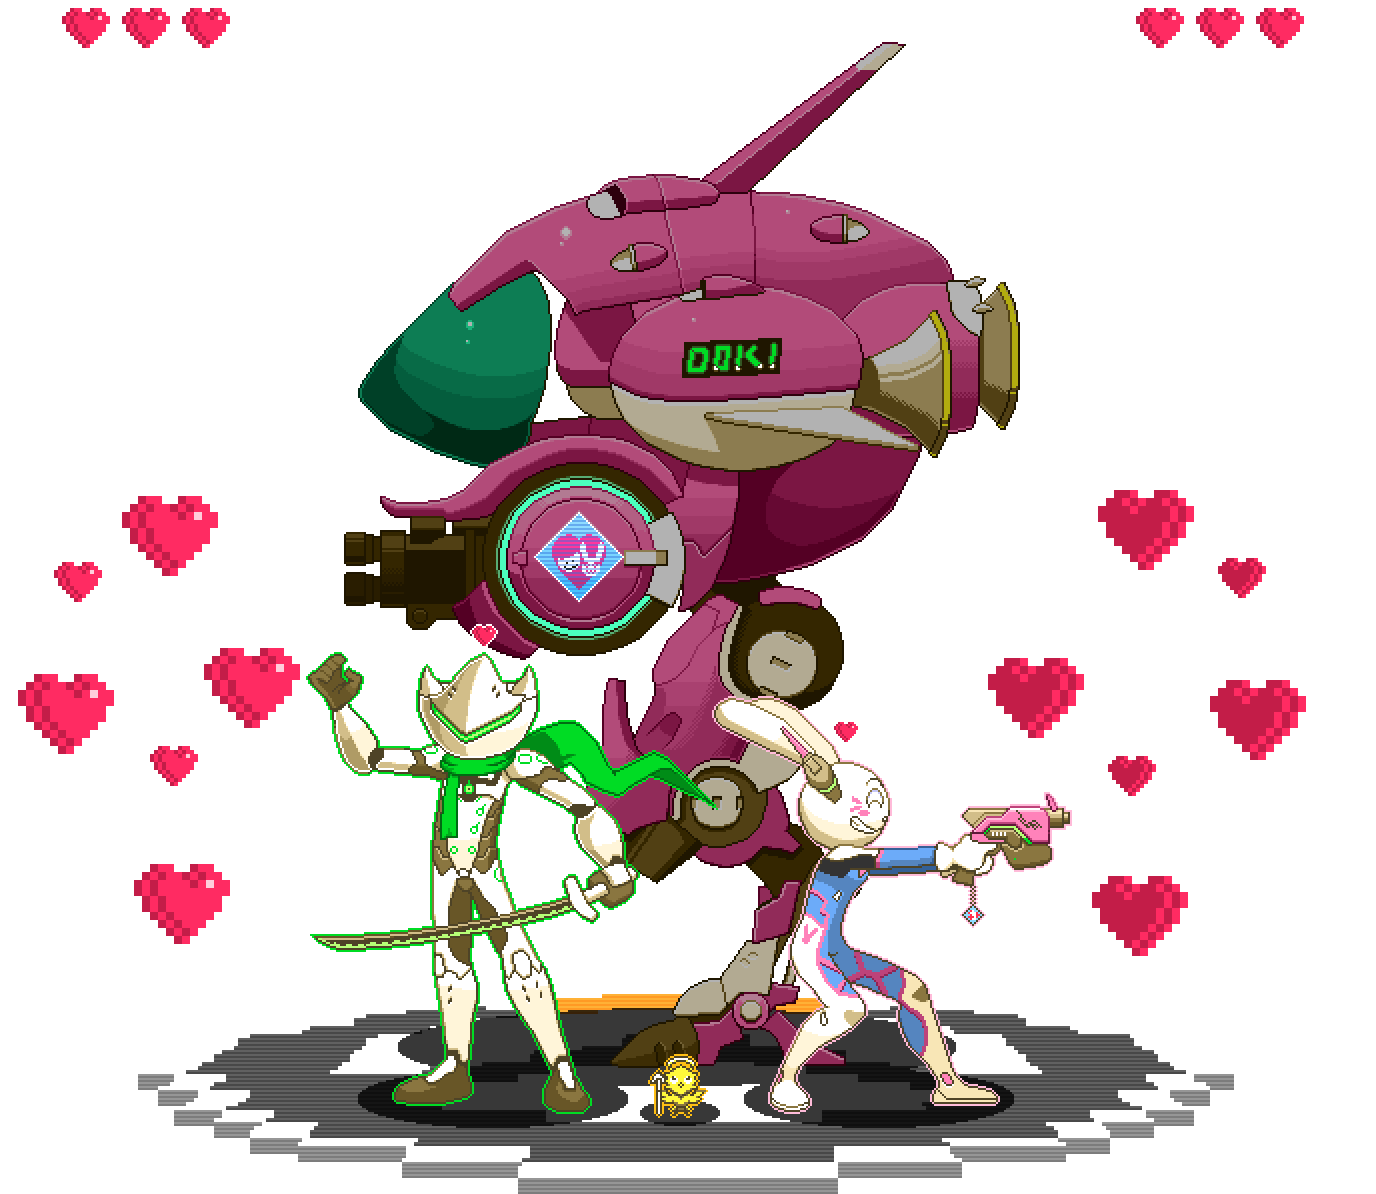 There She Is x Overwatch diorama sprite